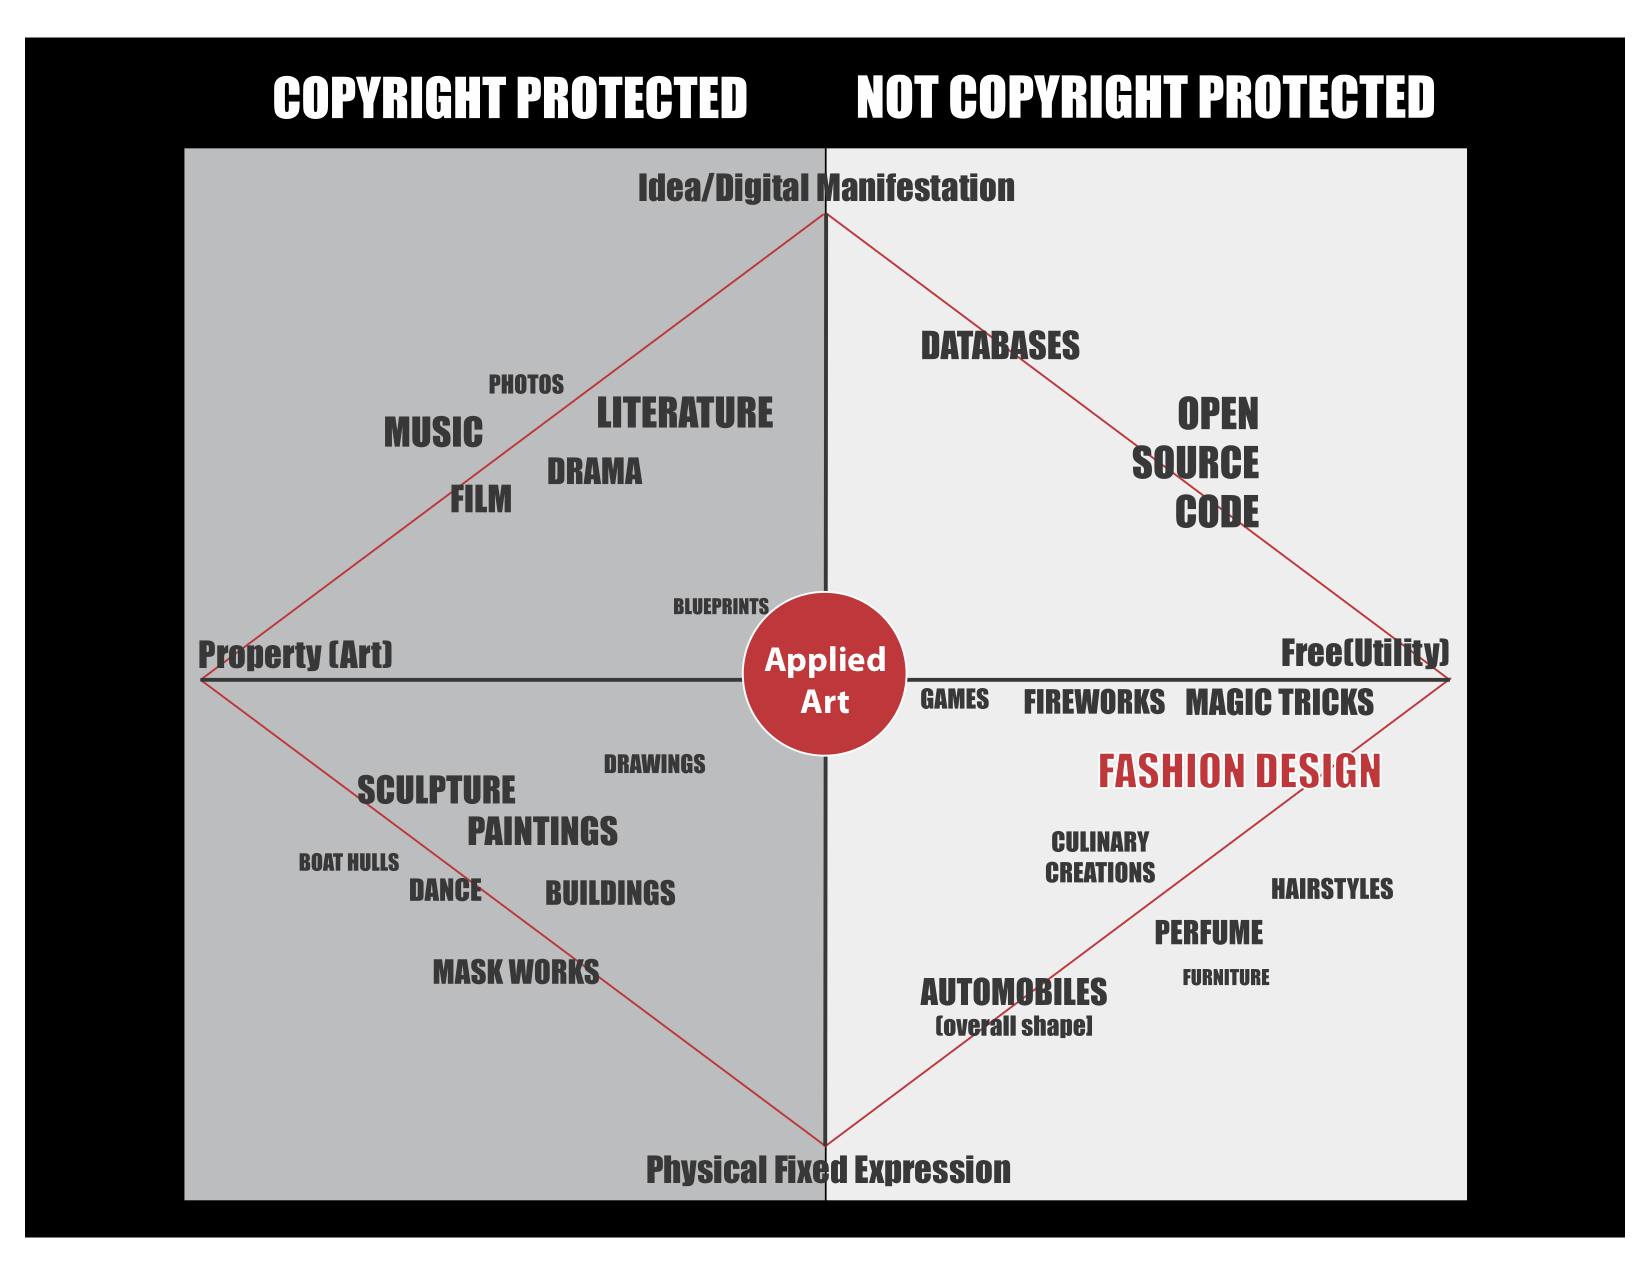 copyright protected and unprotected industries